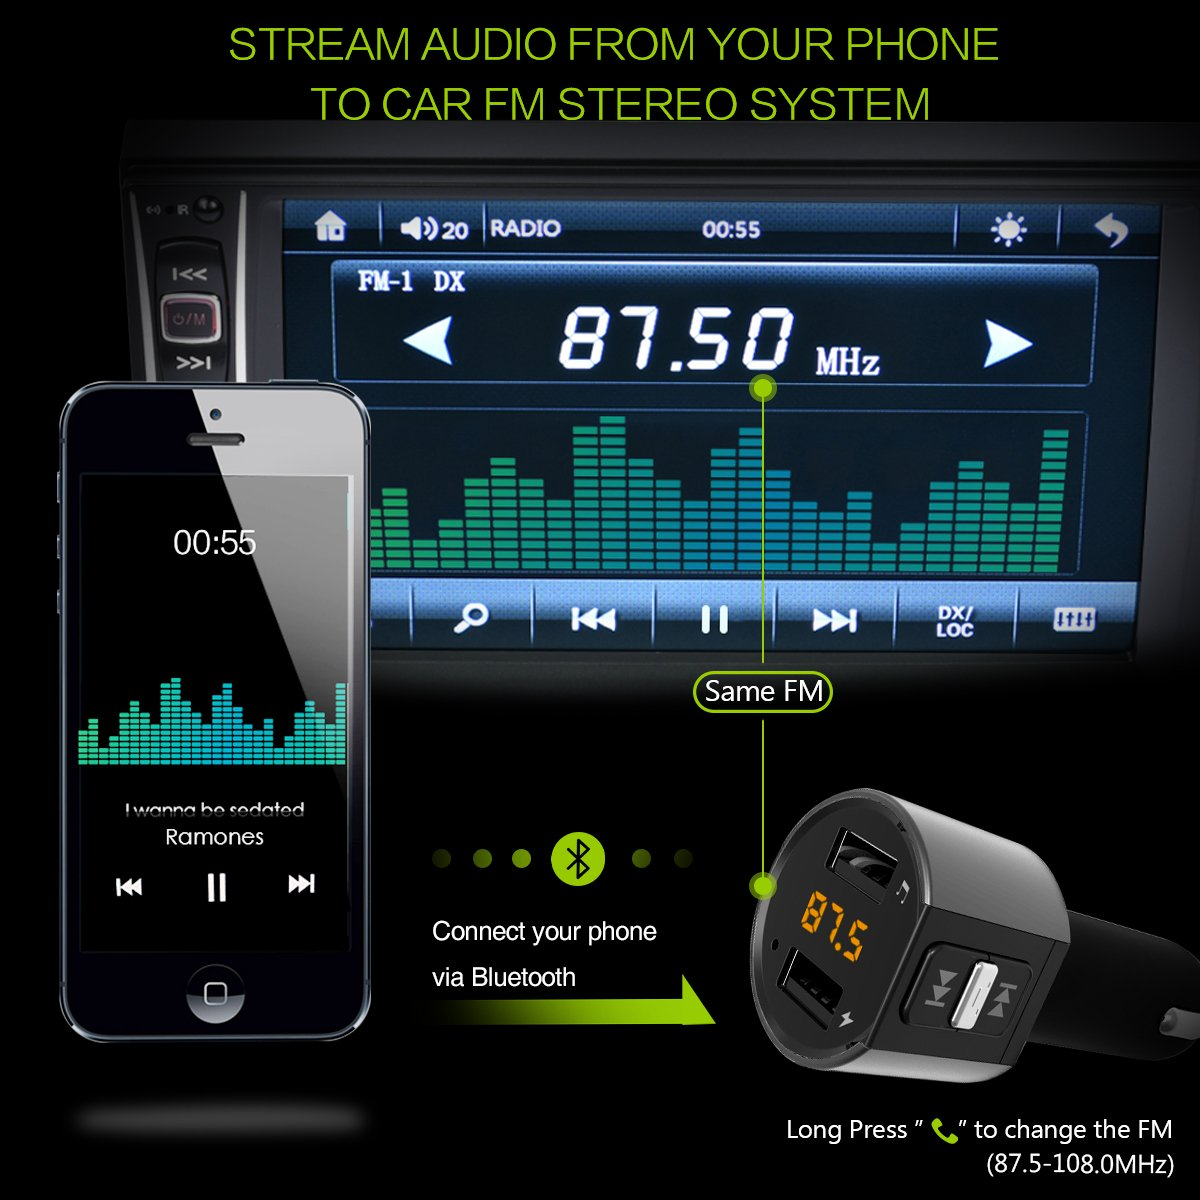 Wireless In-Car Radio Transmitter ORIA Bluetooth FM Transmitter Hands Free Calling Universal Car Charger with Dual USB Charging Ports TF Card Support for Cellphone Great Present Gift for Friends 4326596349